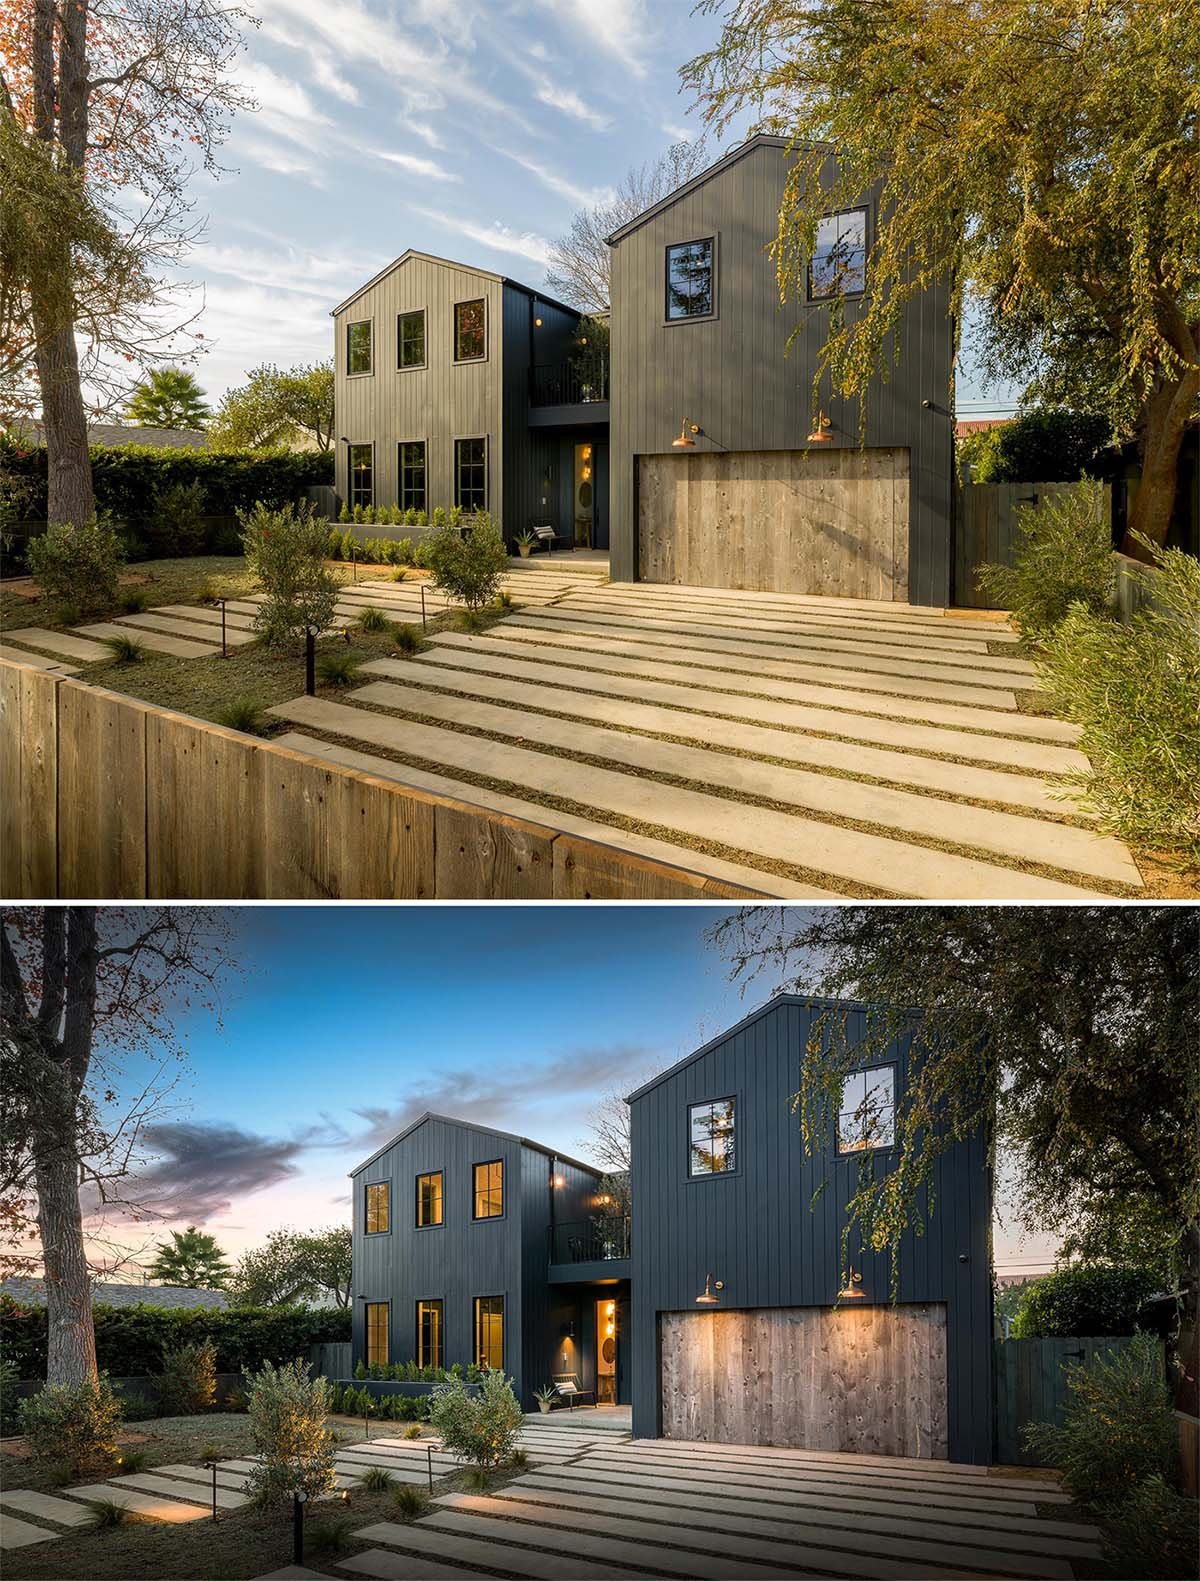 A modern farmhouse inspired home with a double A-frame design.